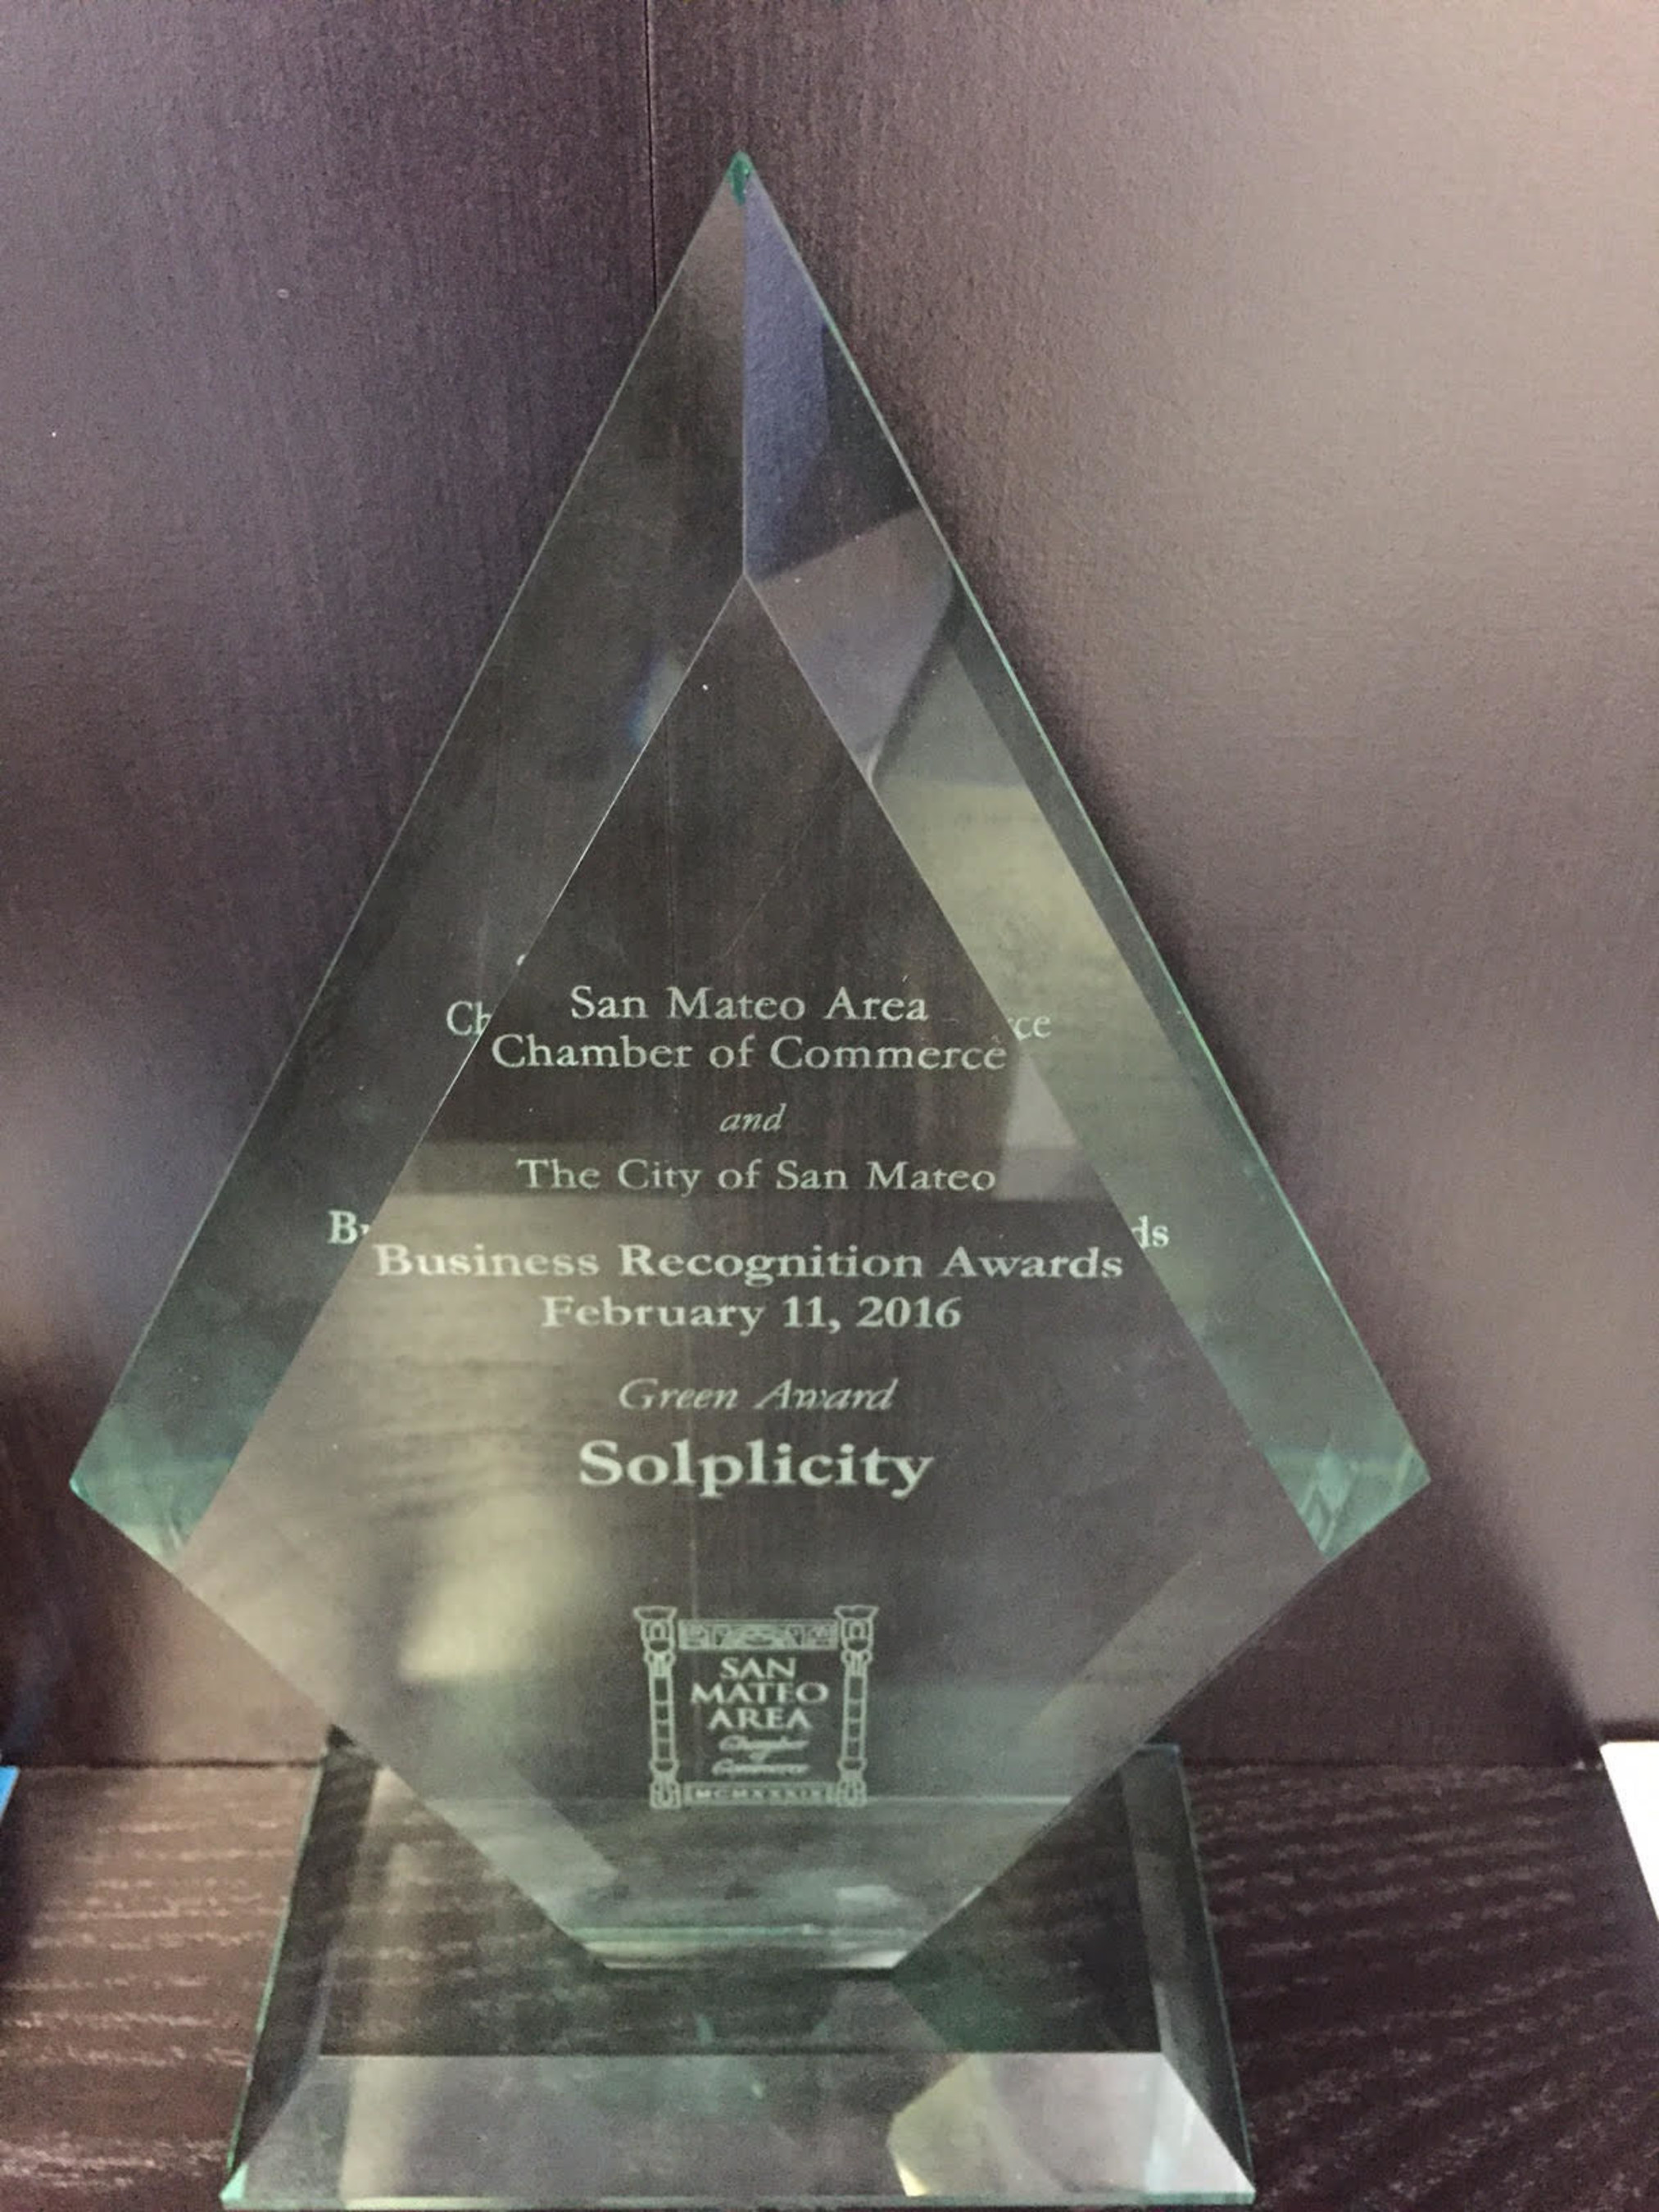 Solplicity Earns Green Award From San Mateo Chamber Of Commerce